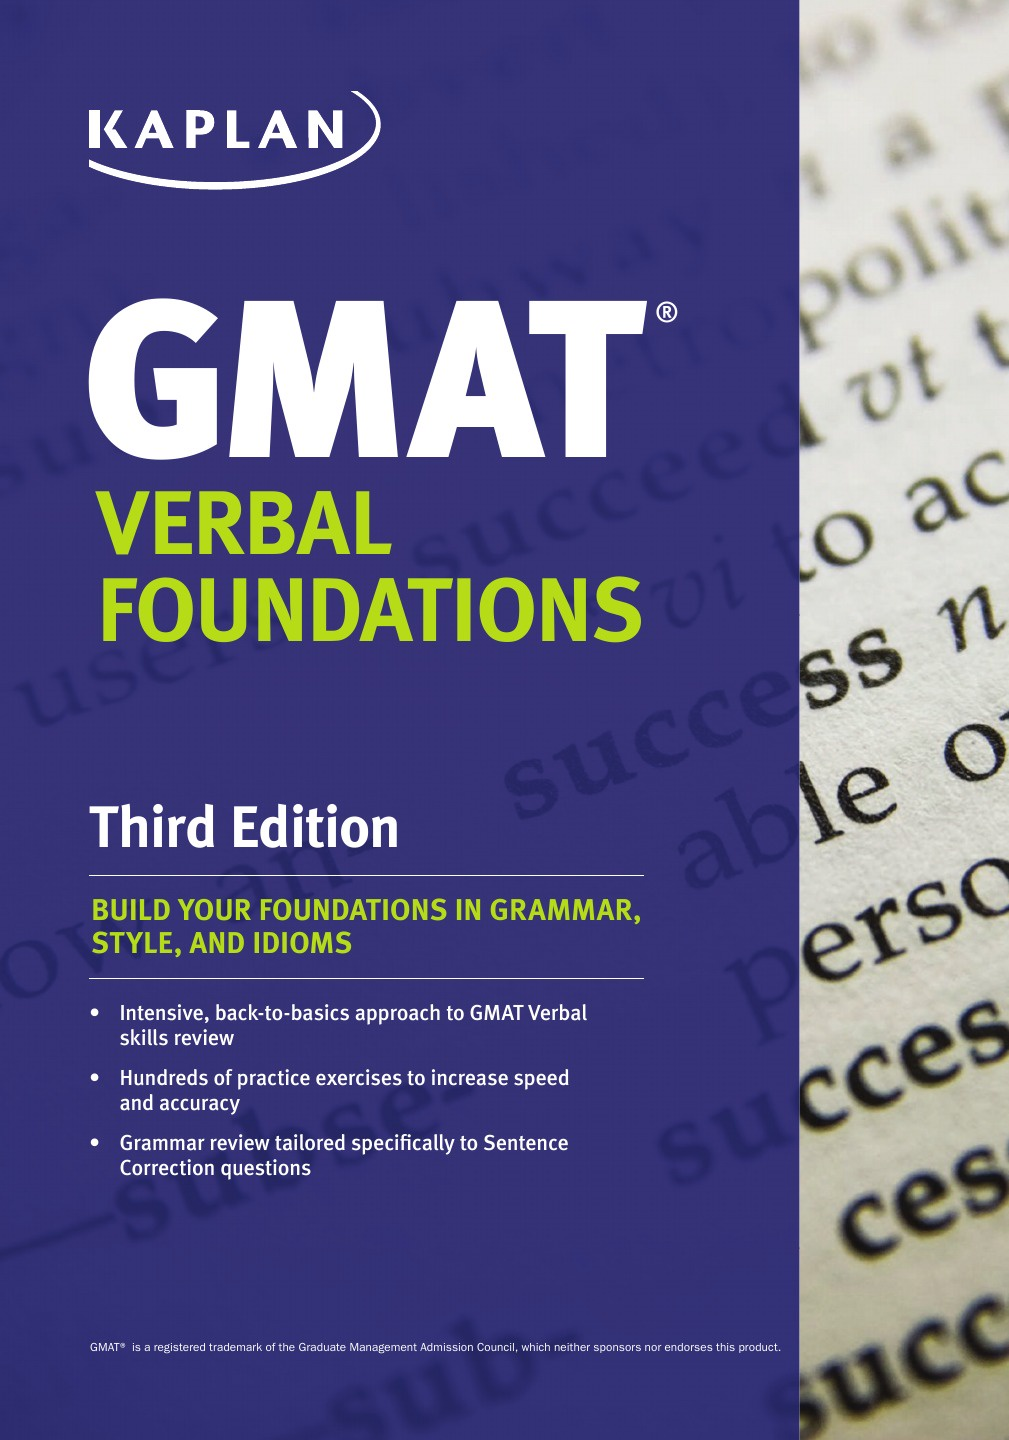 Kaplan Kaplan GMAT Verbal Foundations